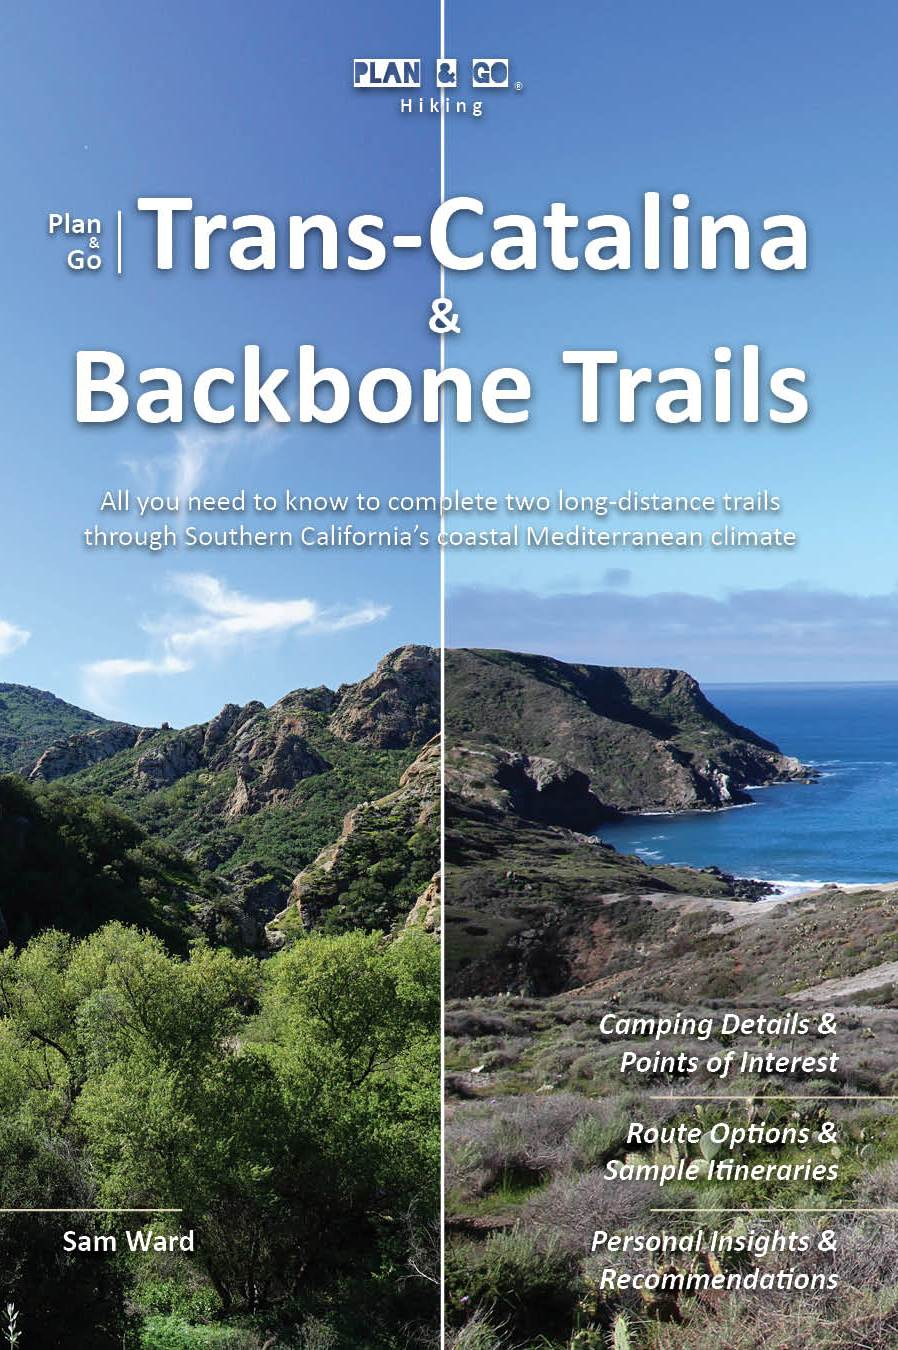 Trans-Catalina Trail & Backbone Trail Guidebook